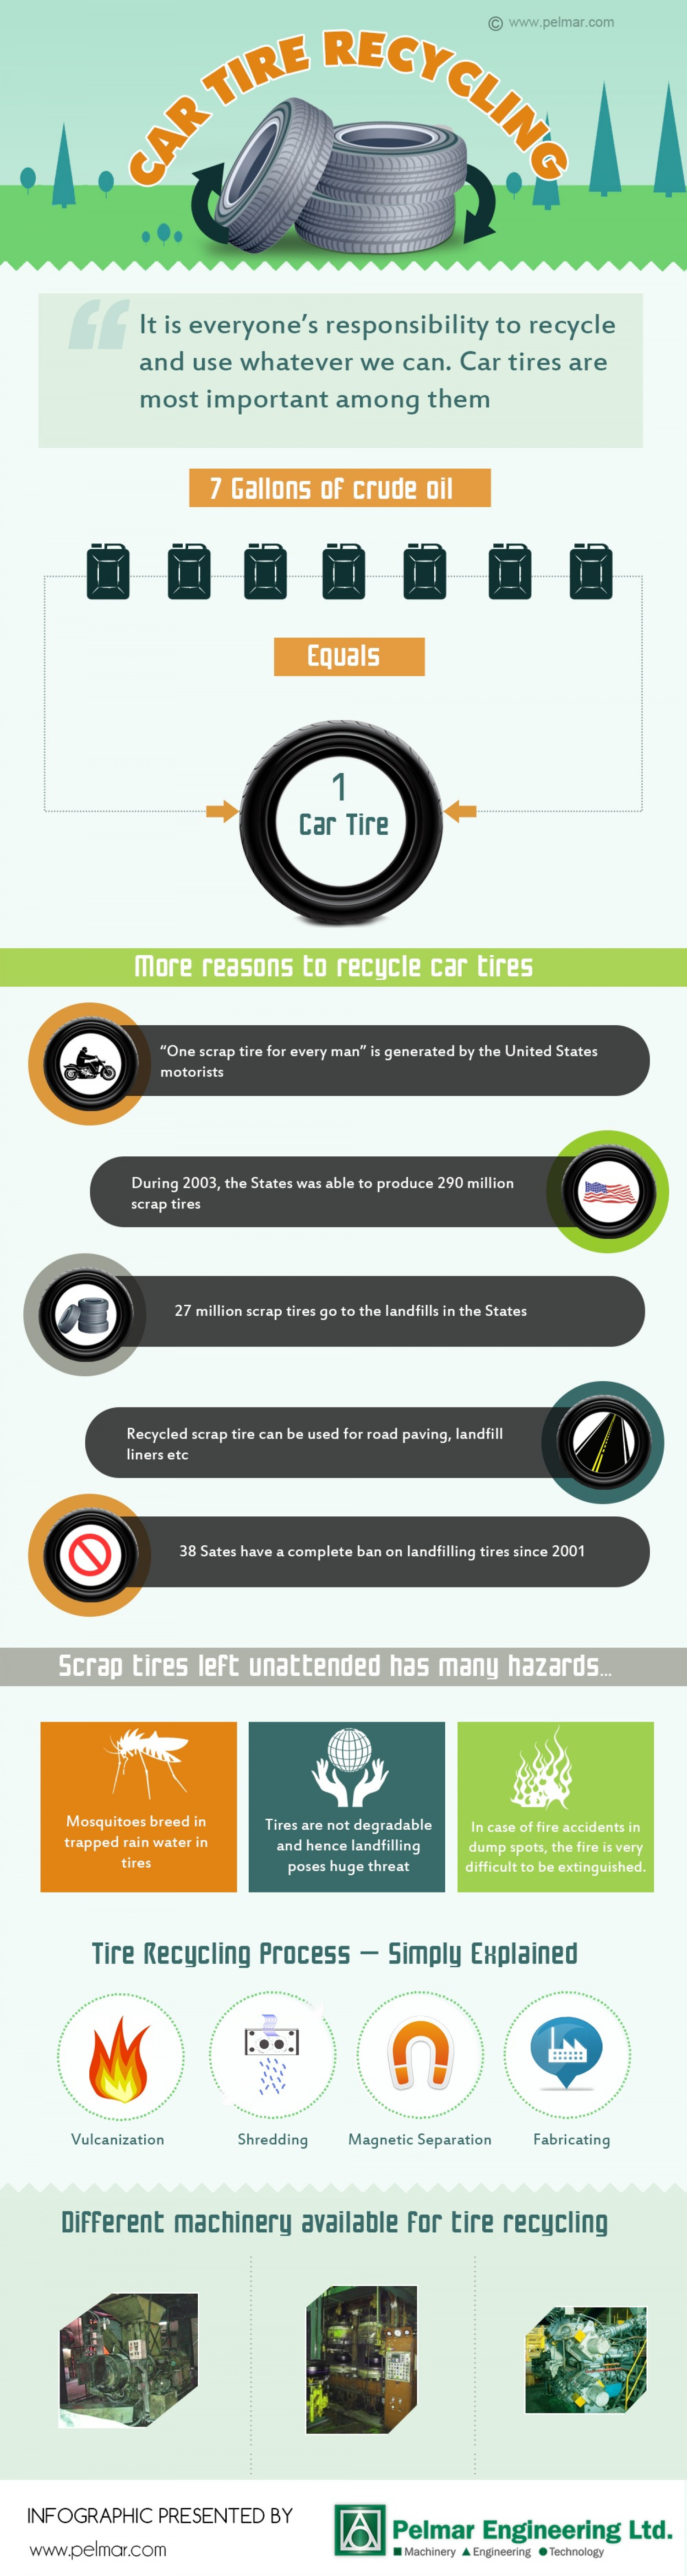 Recycling Machinery - All about car tire recycling Infographic